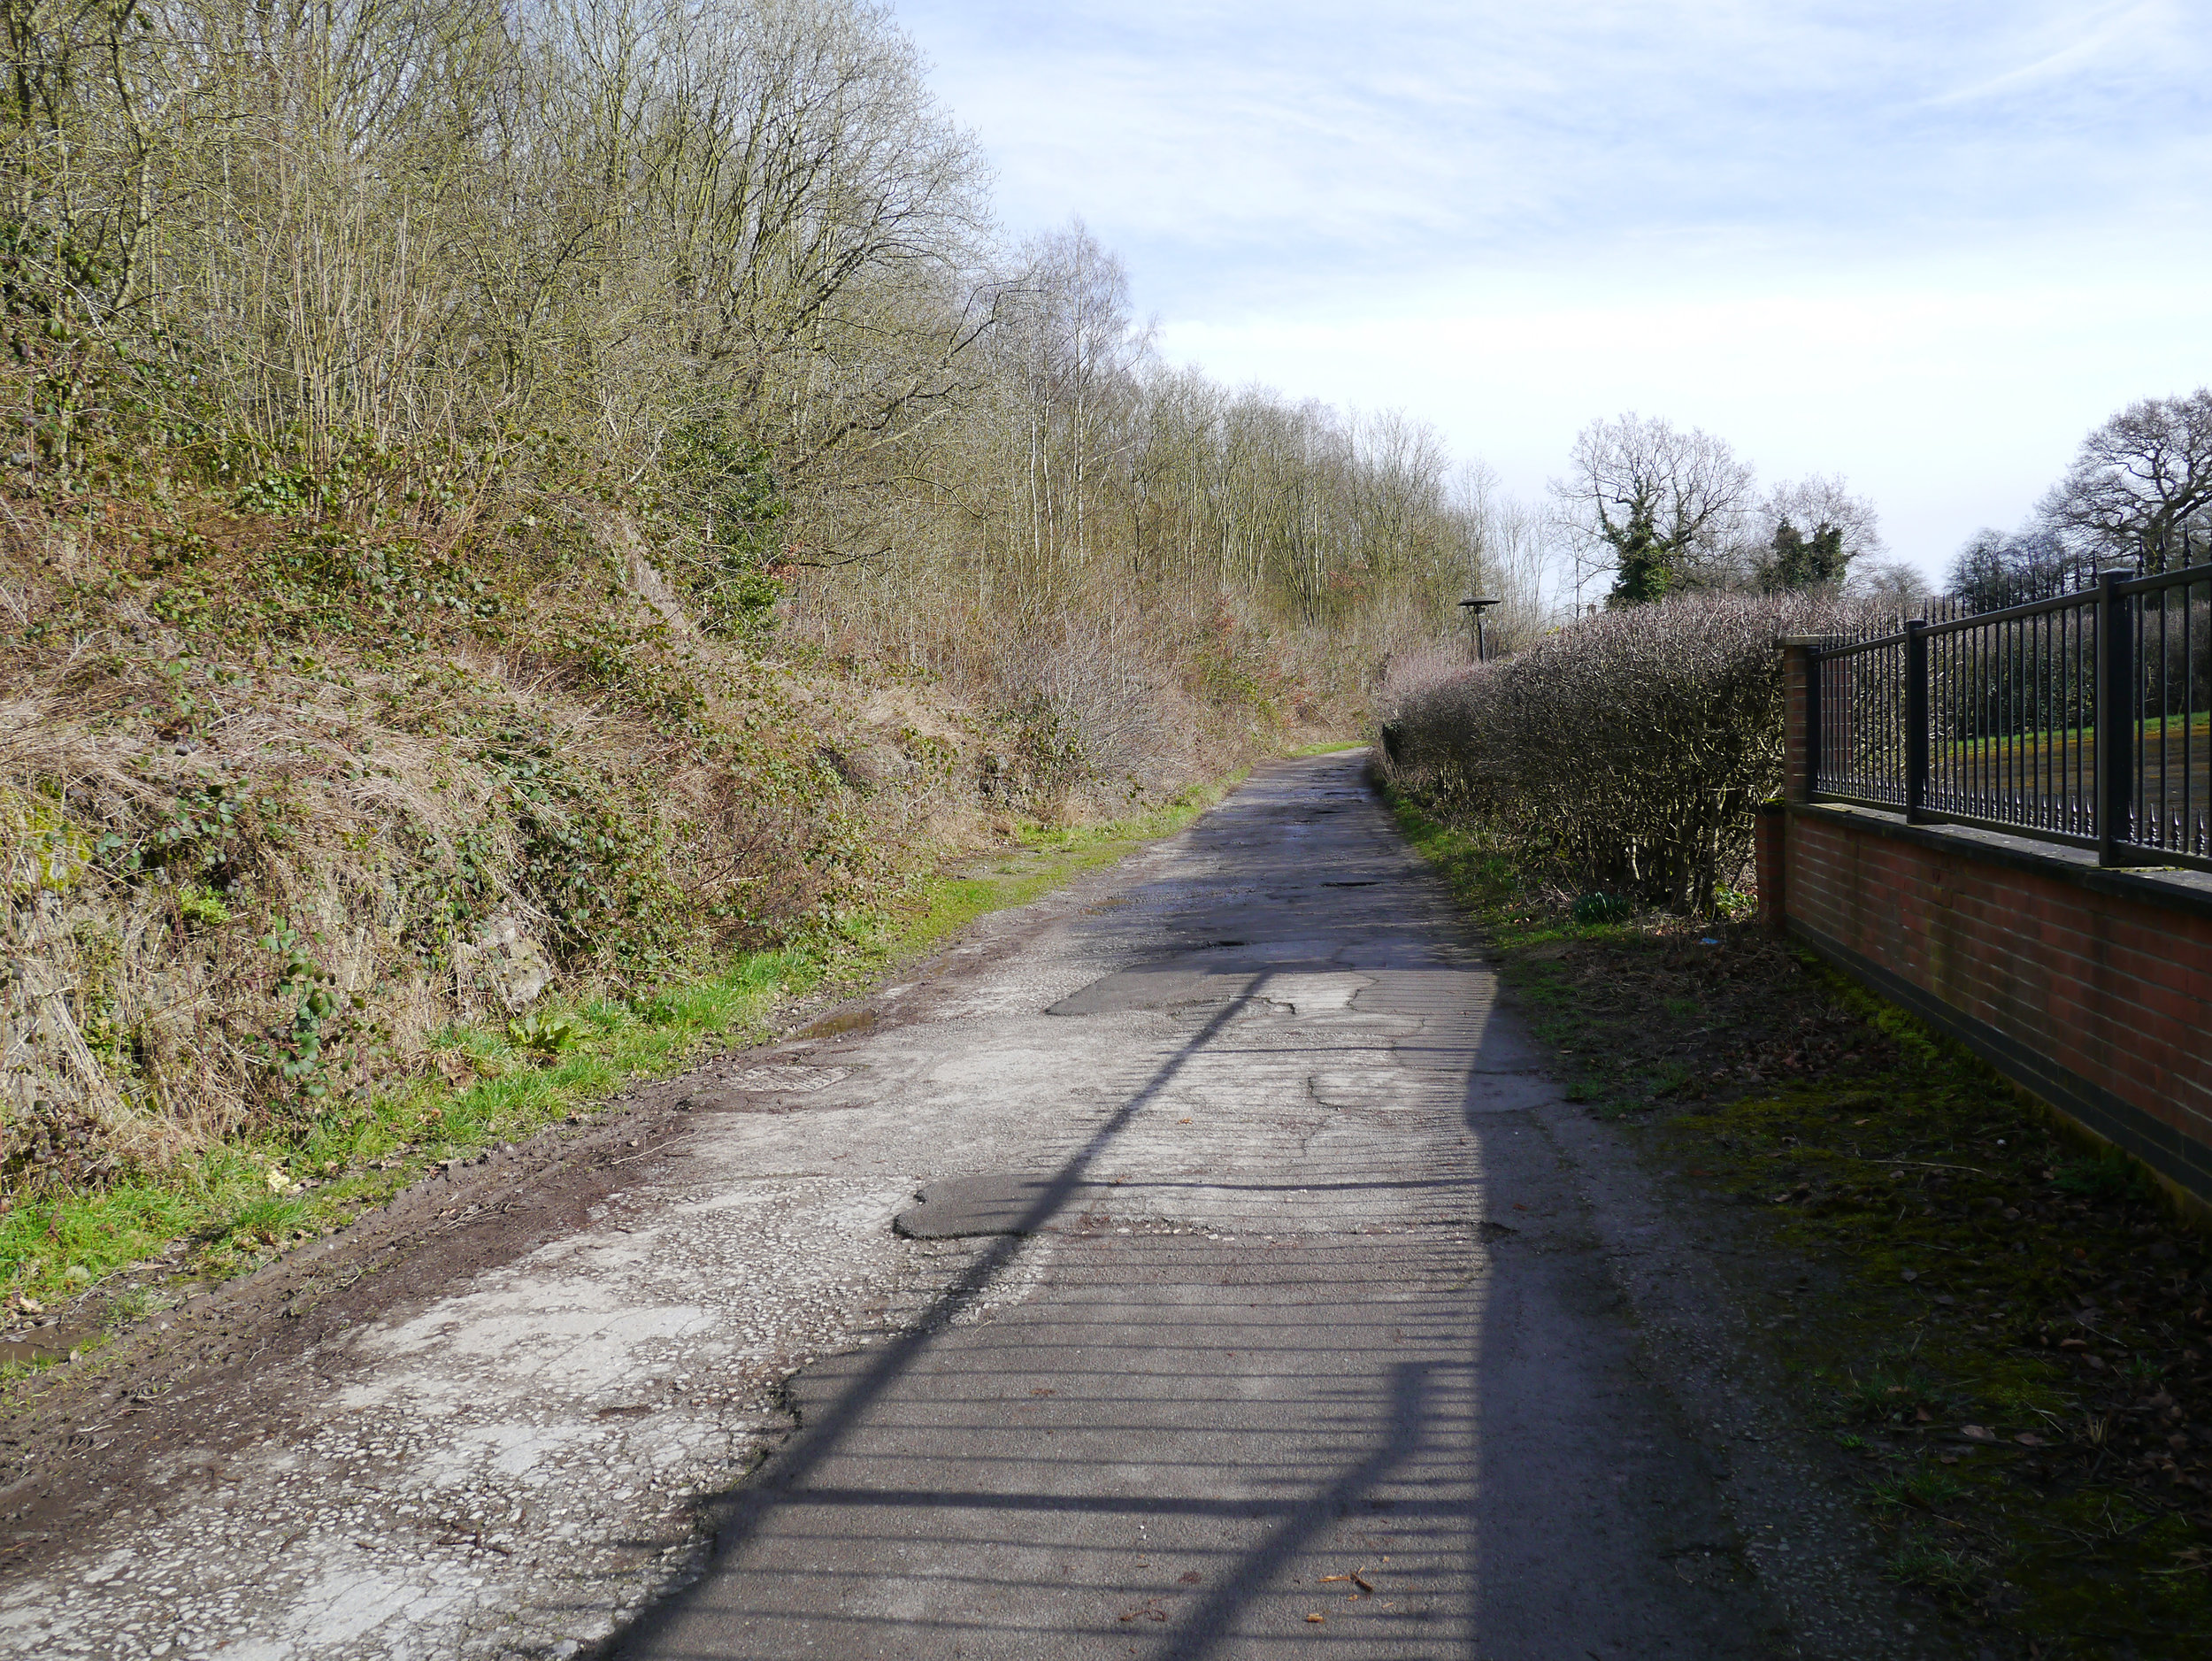 The coach road